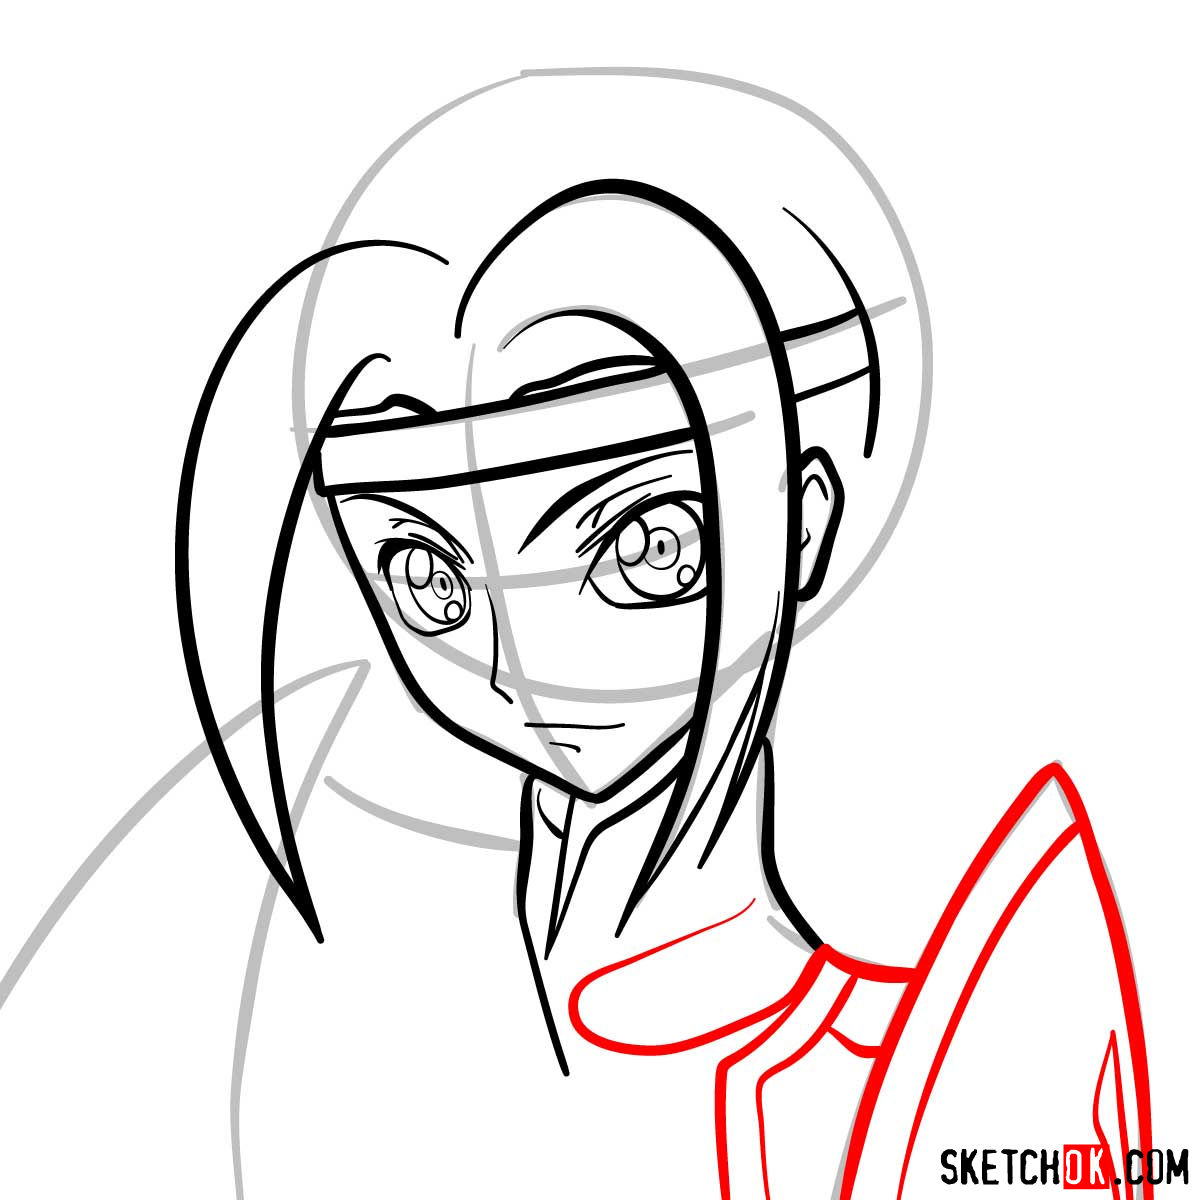 Making the drawing of Kallen Kozuki's face from Code Geass - step 08